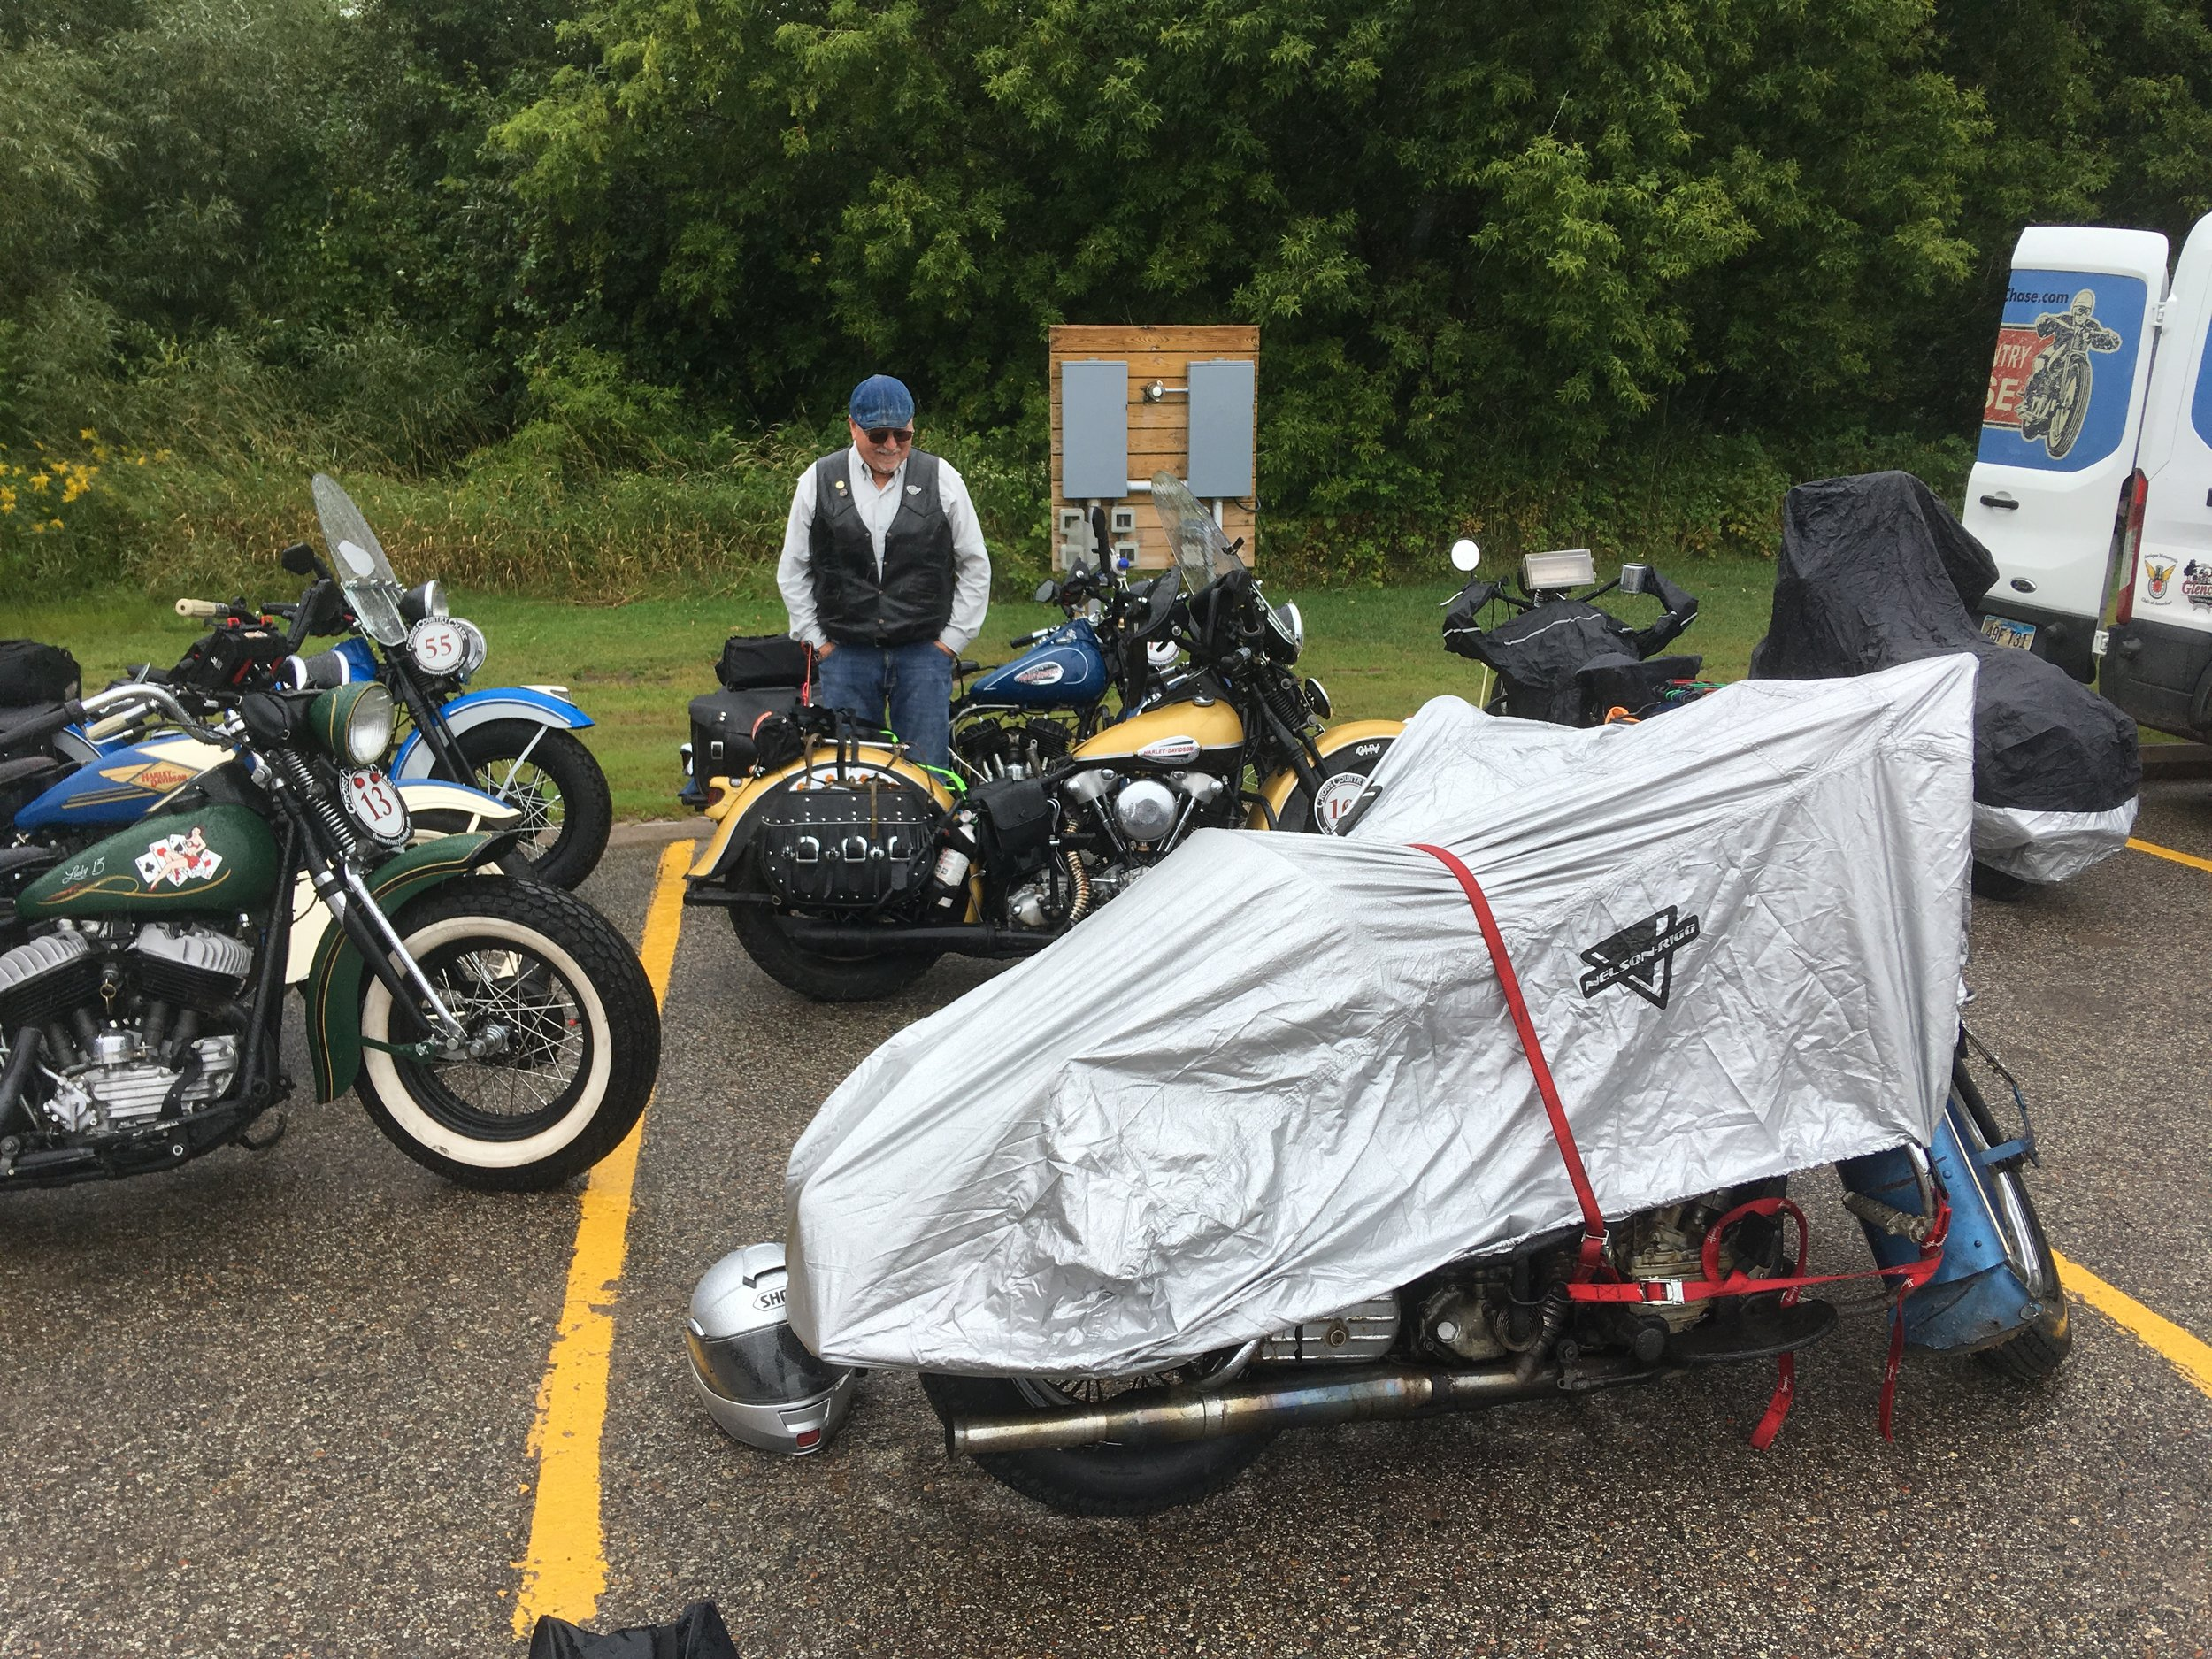 Bikes arriving in rainy Michigan